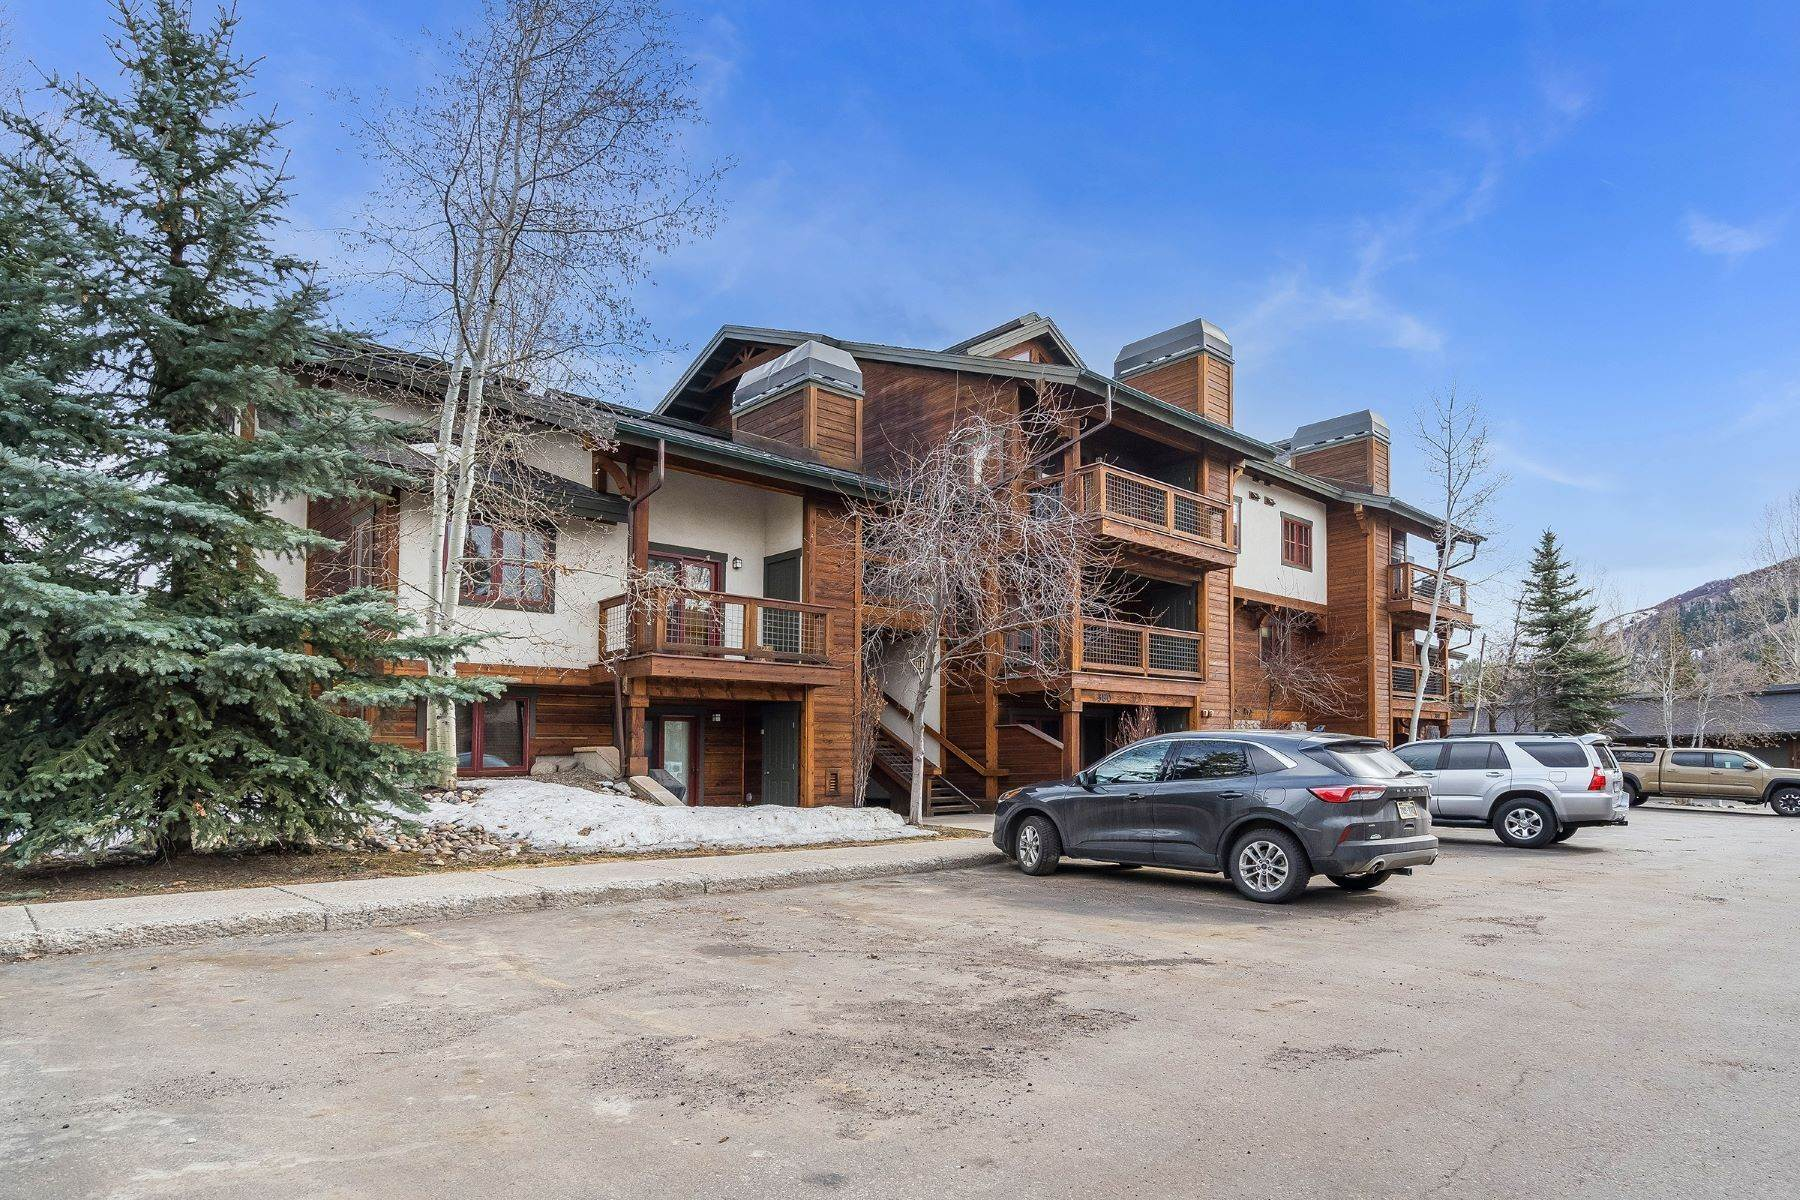 Condominiums for Sale at The Pines at Ore House Condo 380 Ore House Plaza Unit # 1036 Steamboat Springs, Colorado 80487 United States